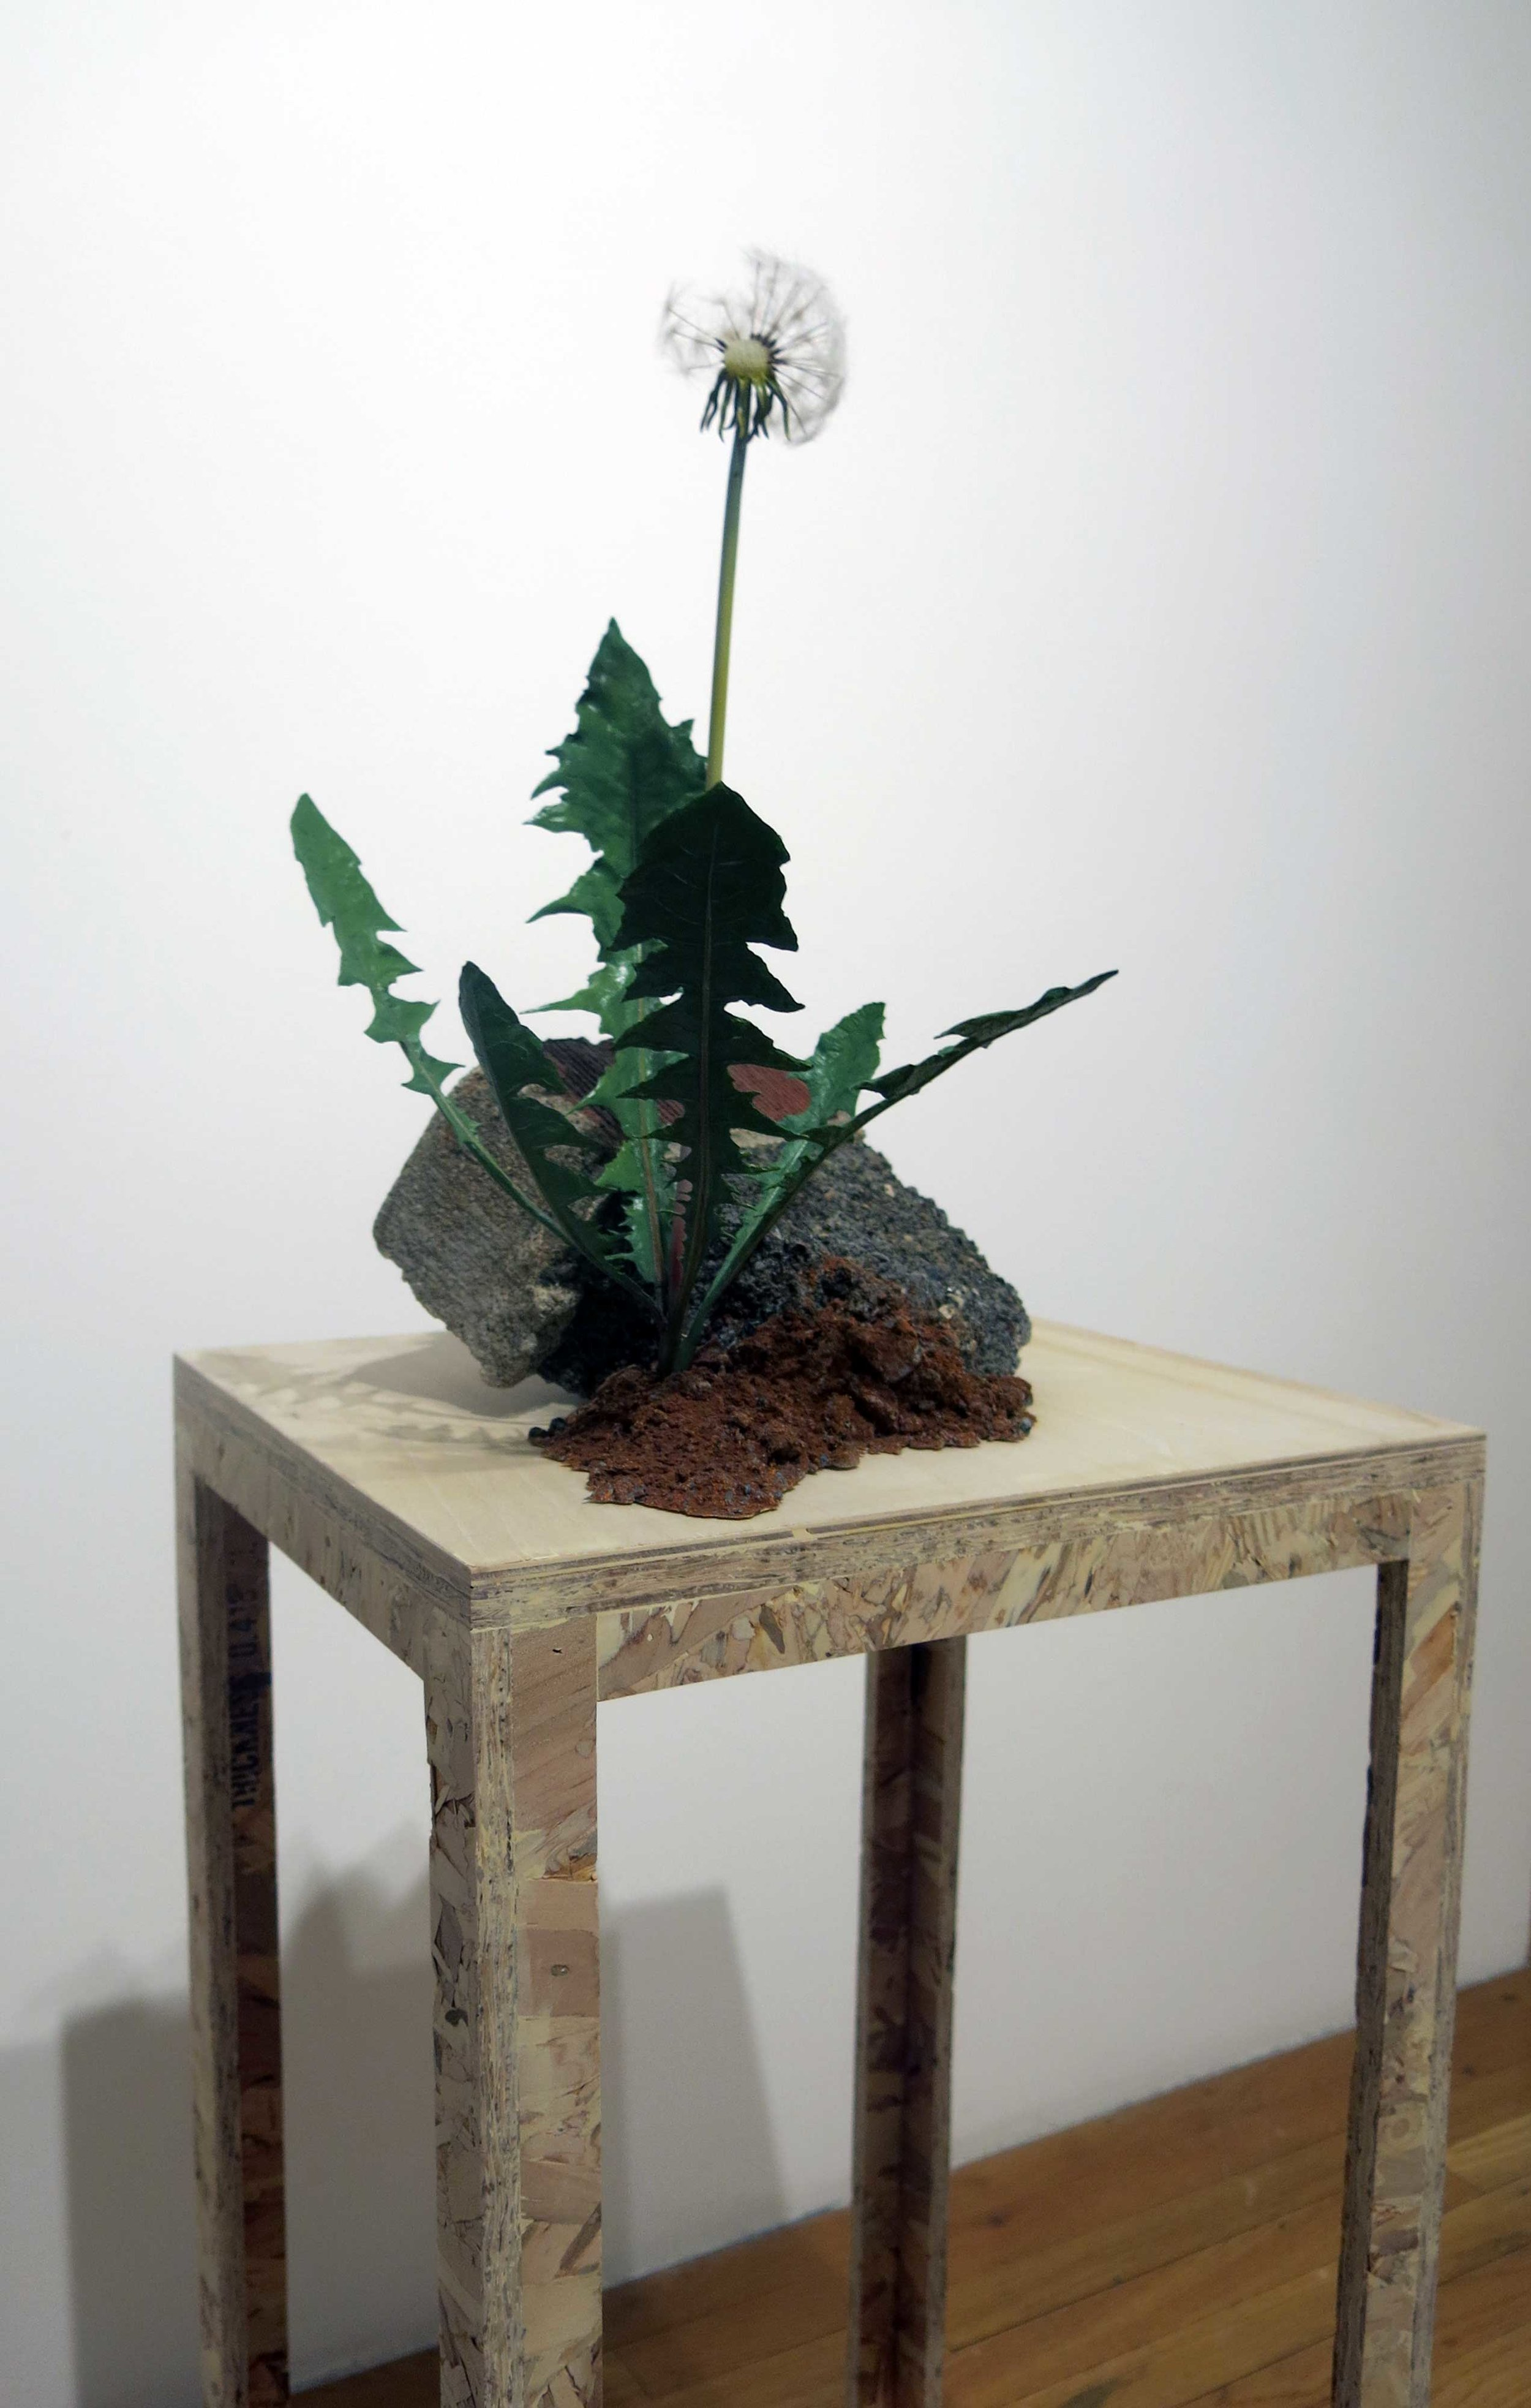 Markus Baenziger, Give or Take, 2017, mixed media, (with pedastal) 45.5h x 15w x 13.5d in.